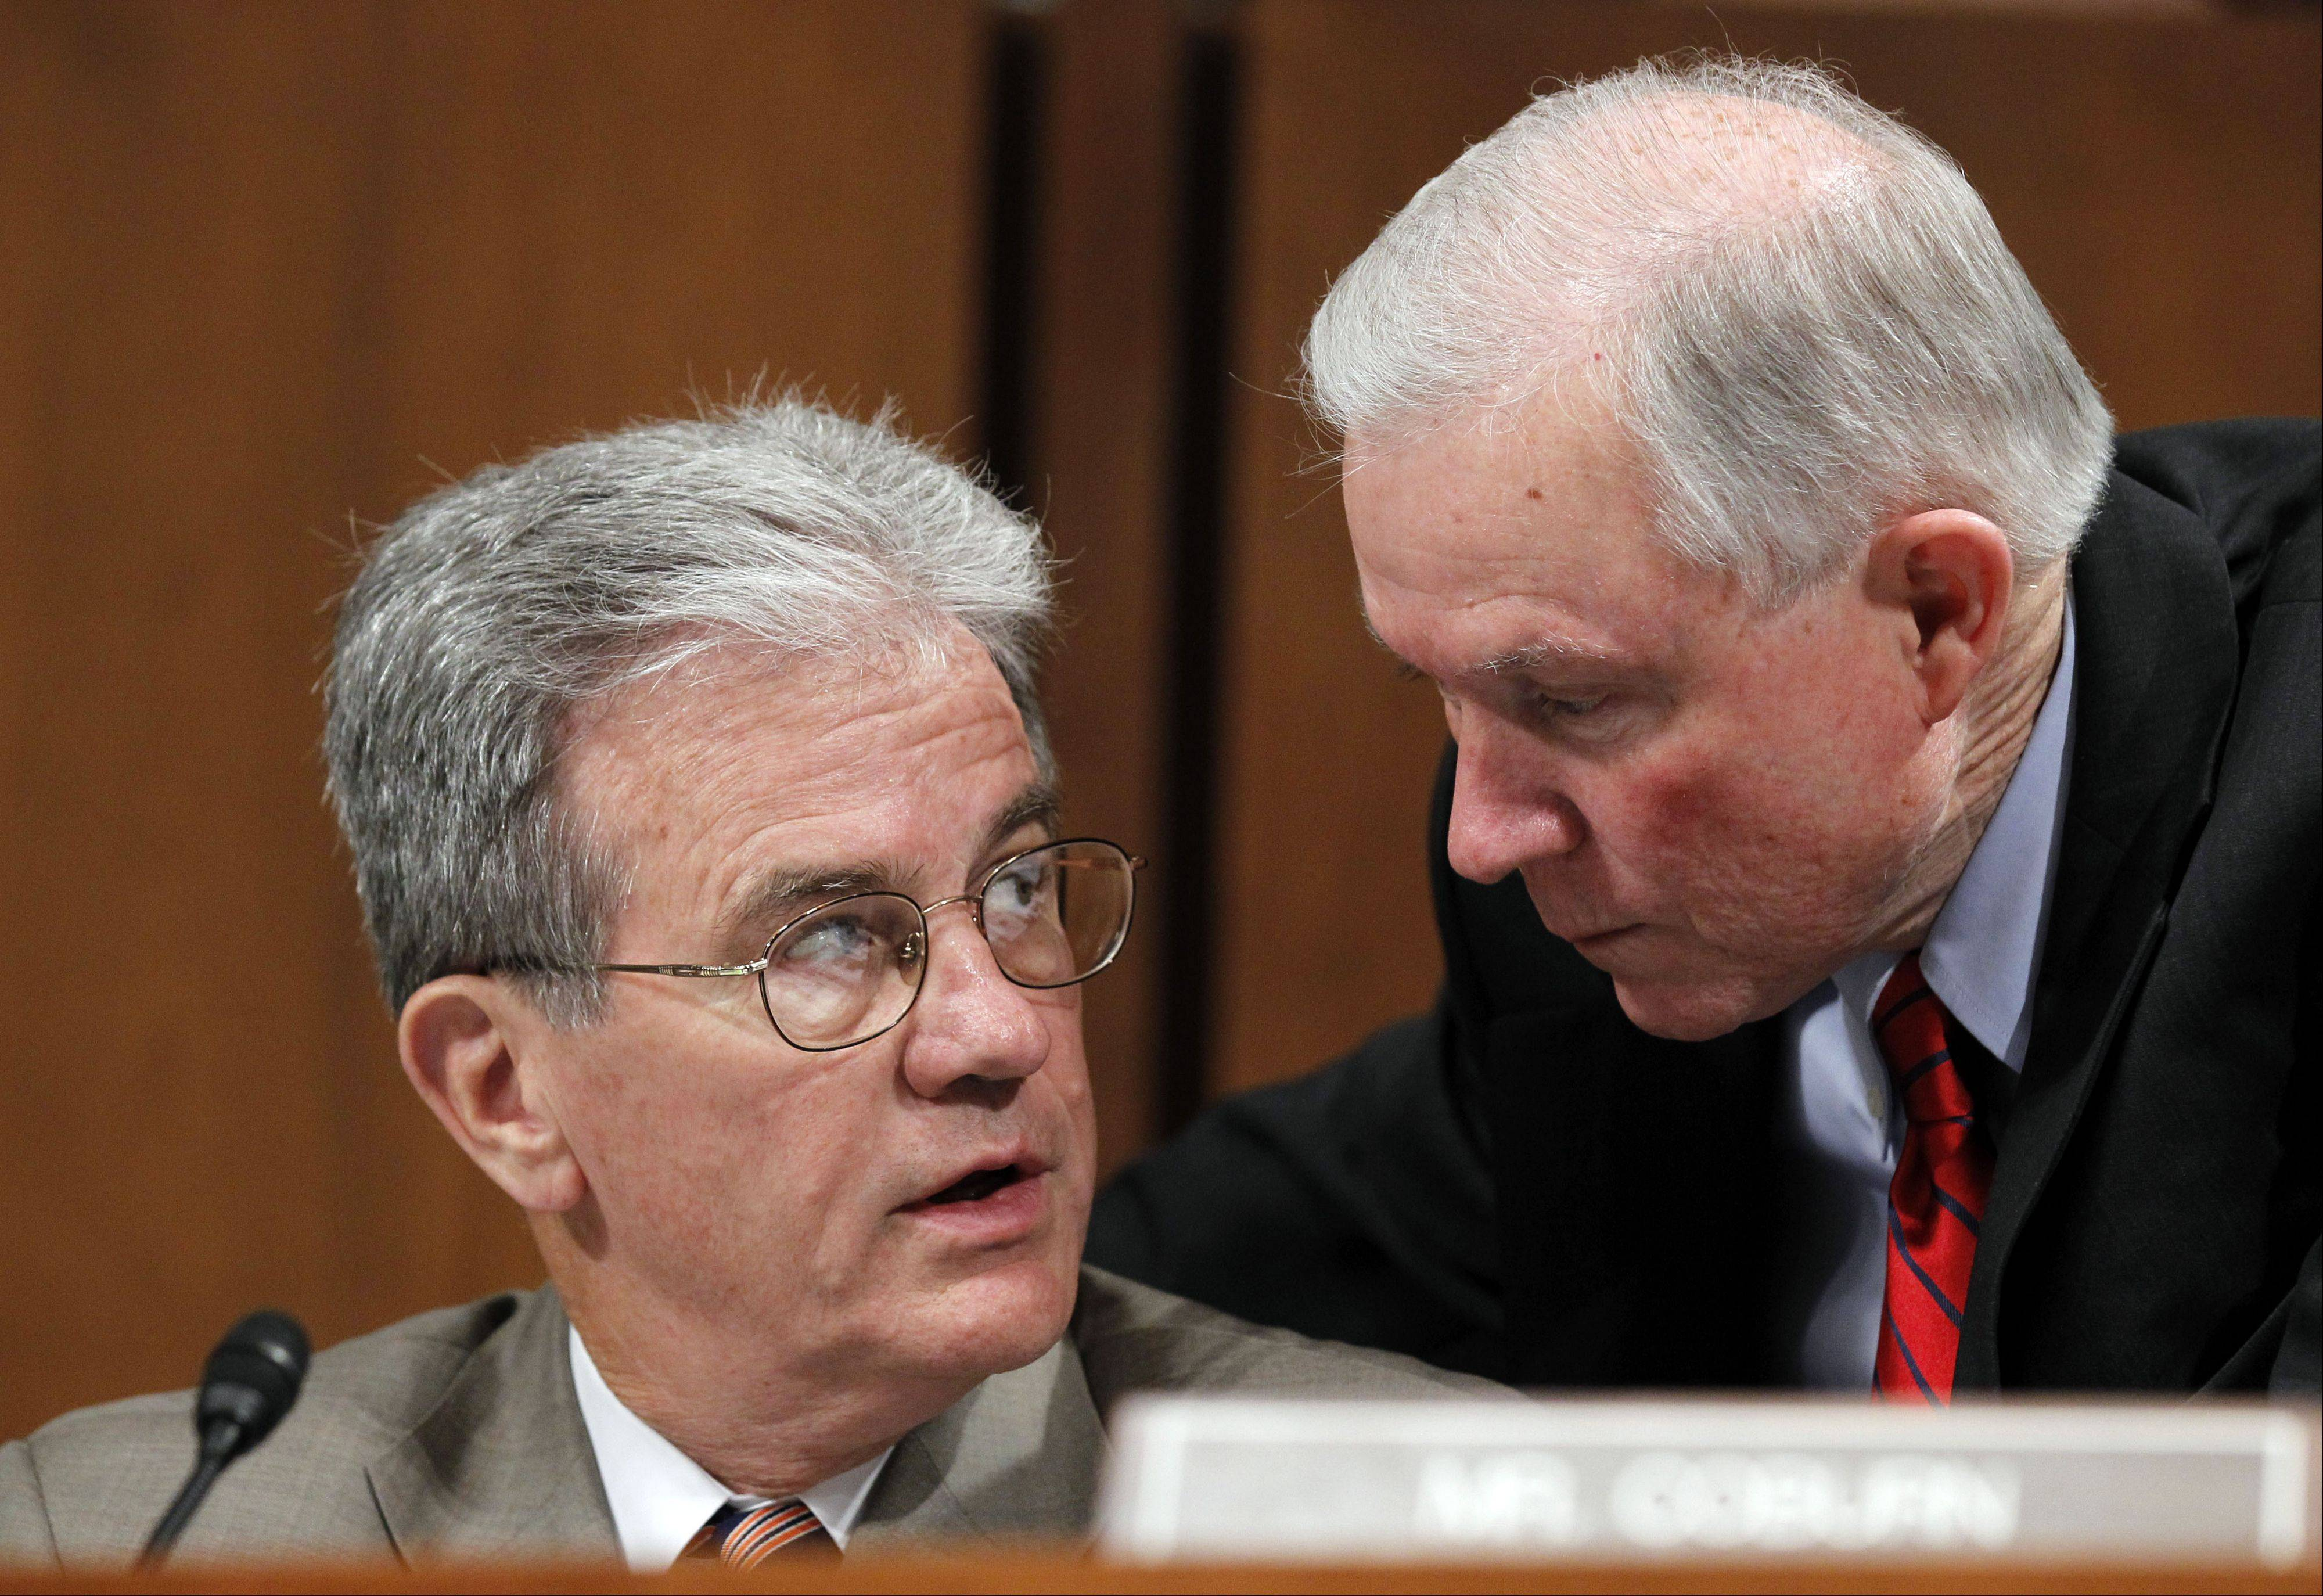 Sen, Jeff Sessions of Alabama, right, talks with Sen. Tom Coburn of Oklahoma on Capitol Hill in this file photo from June 30, 2010. On Thursday, Coburn announced his retirement at the end of 2014.